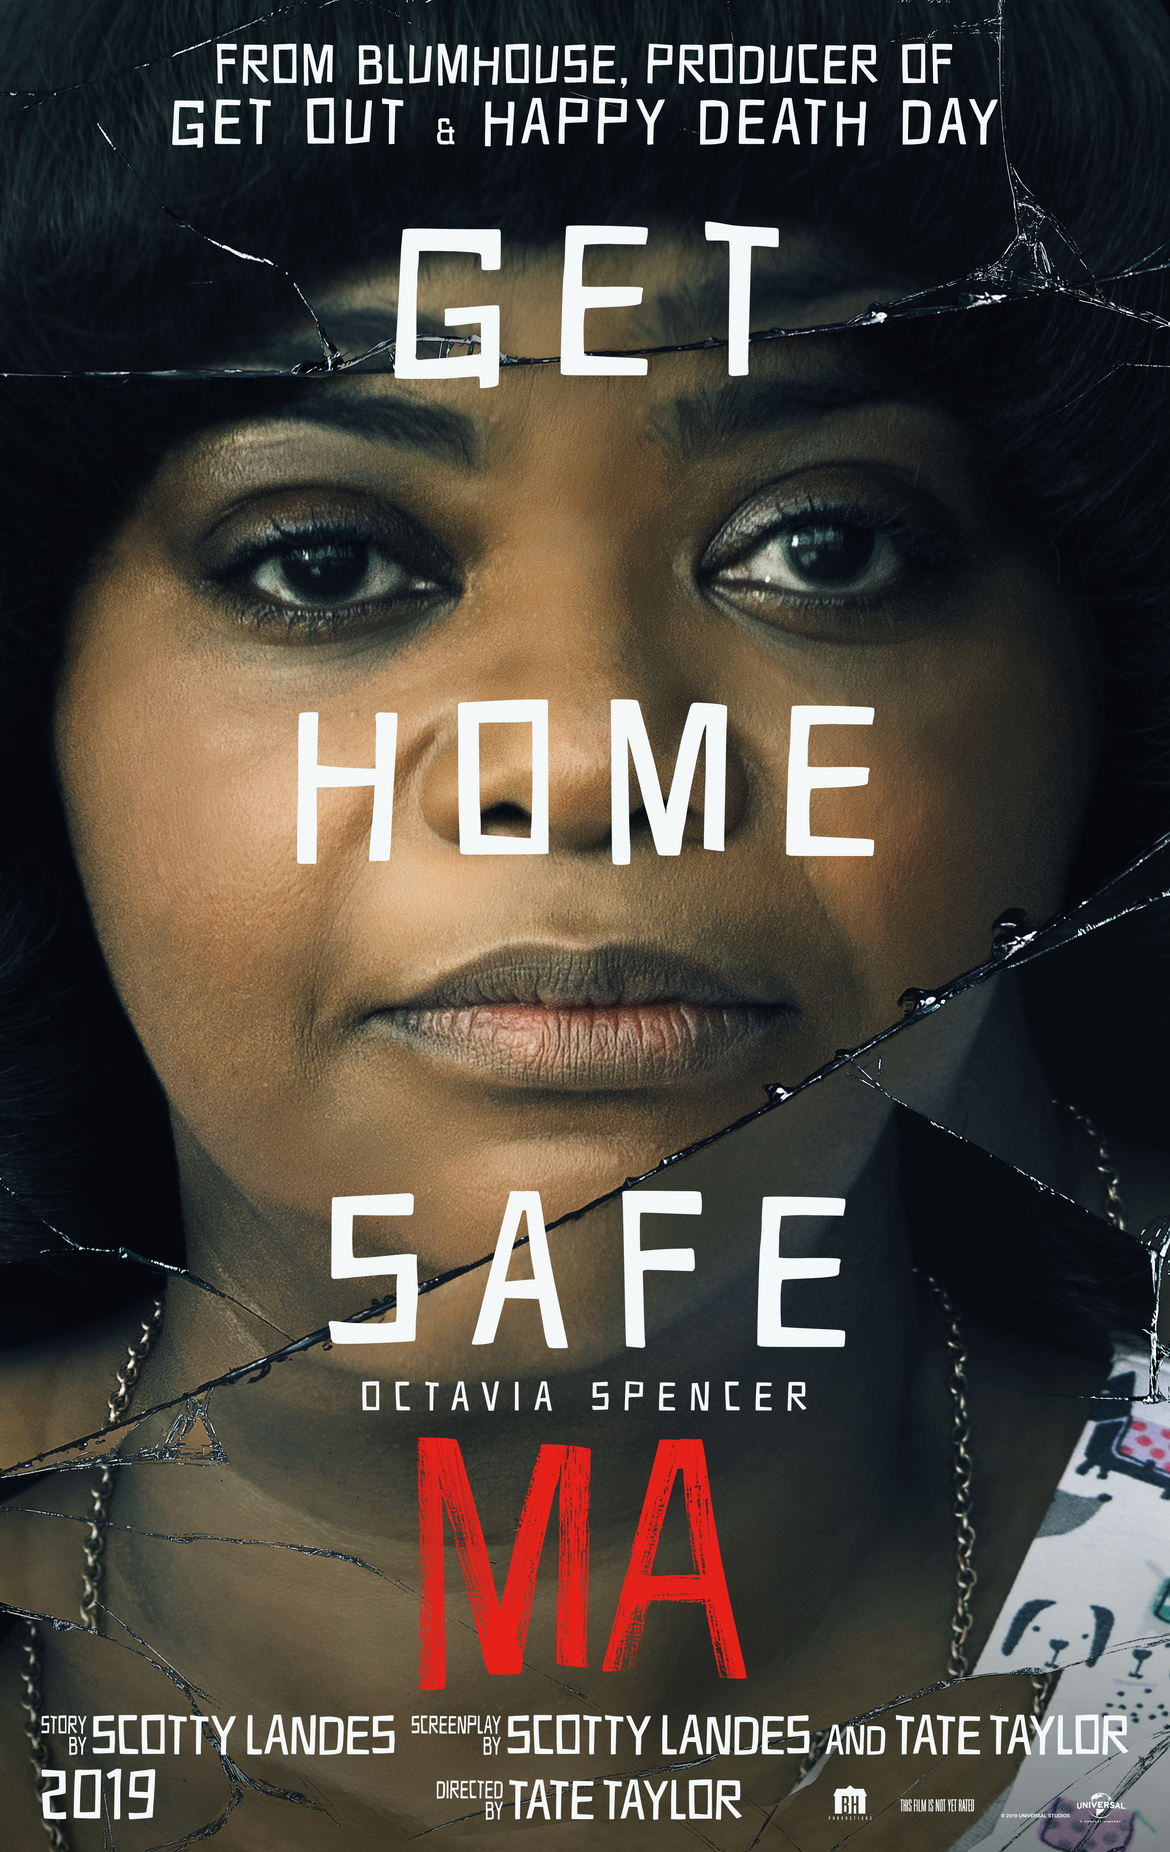 Ma Octavia Spencer movie poster